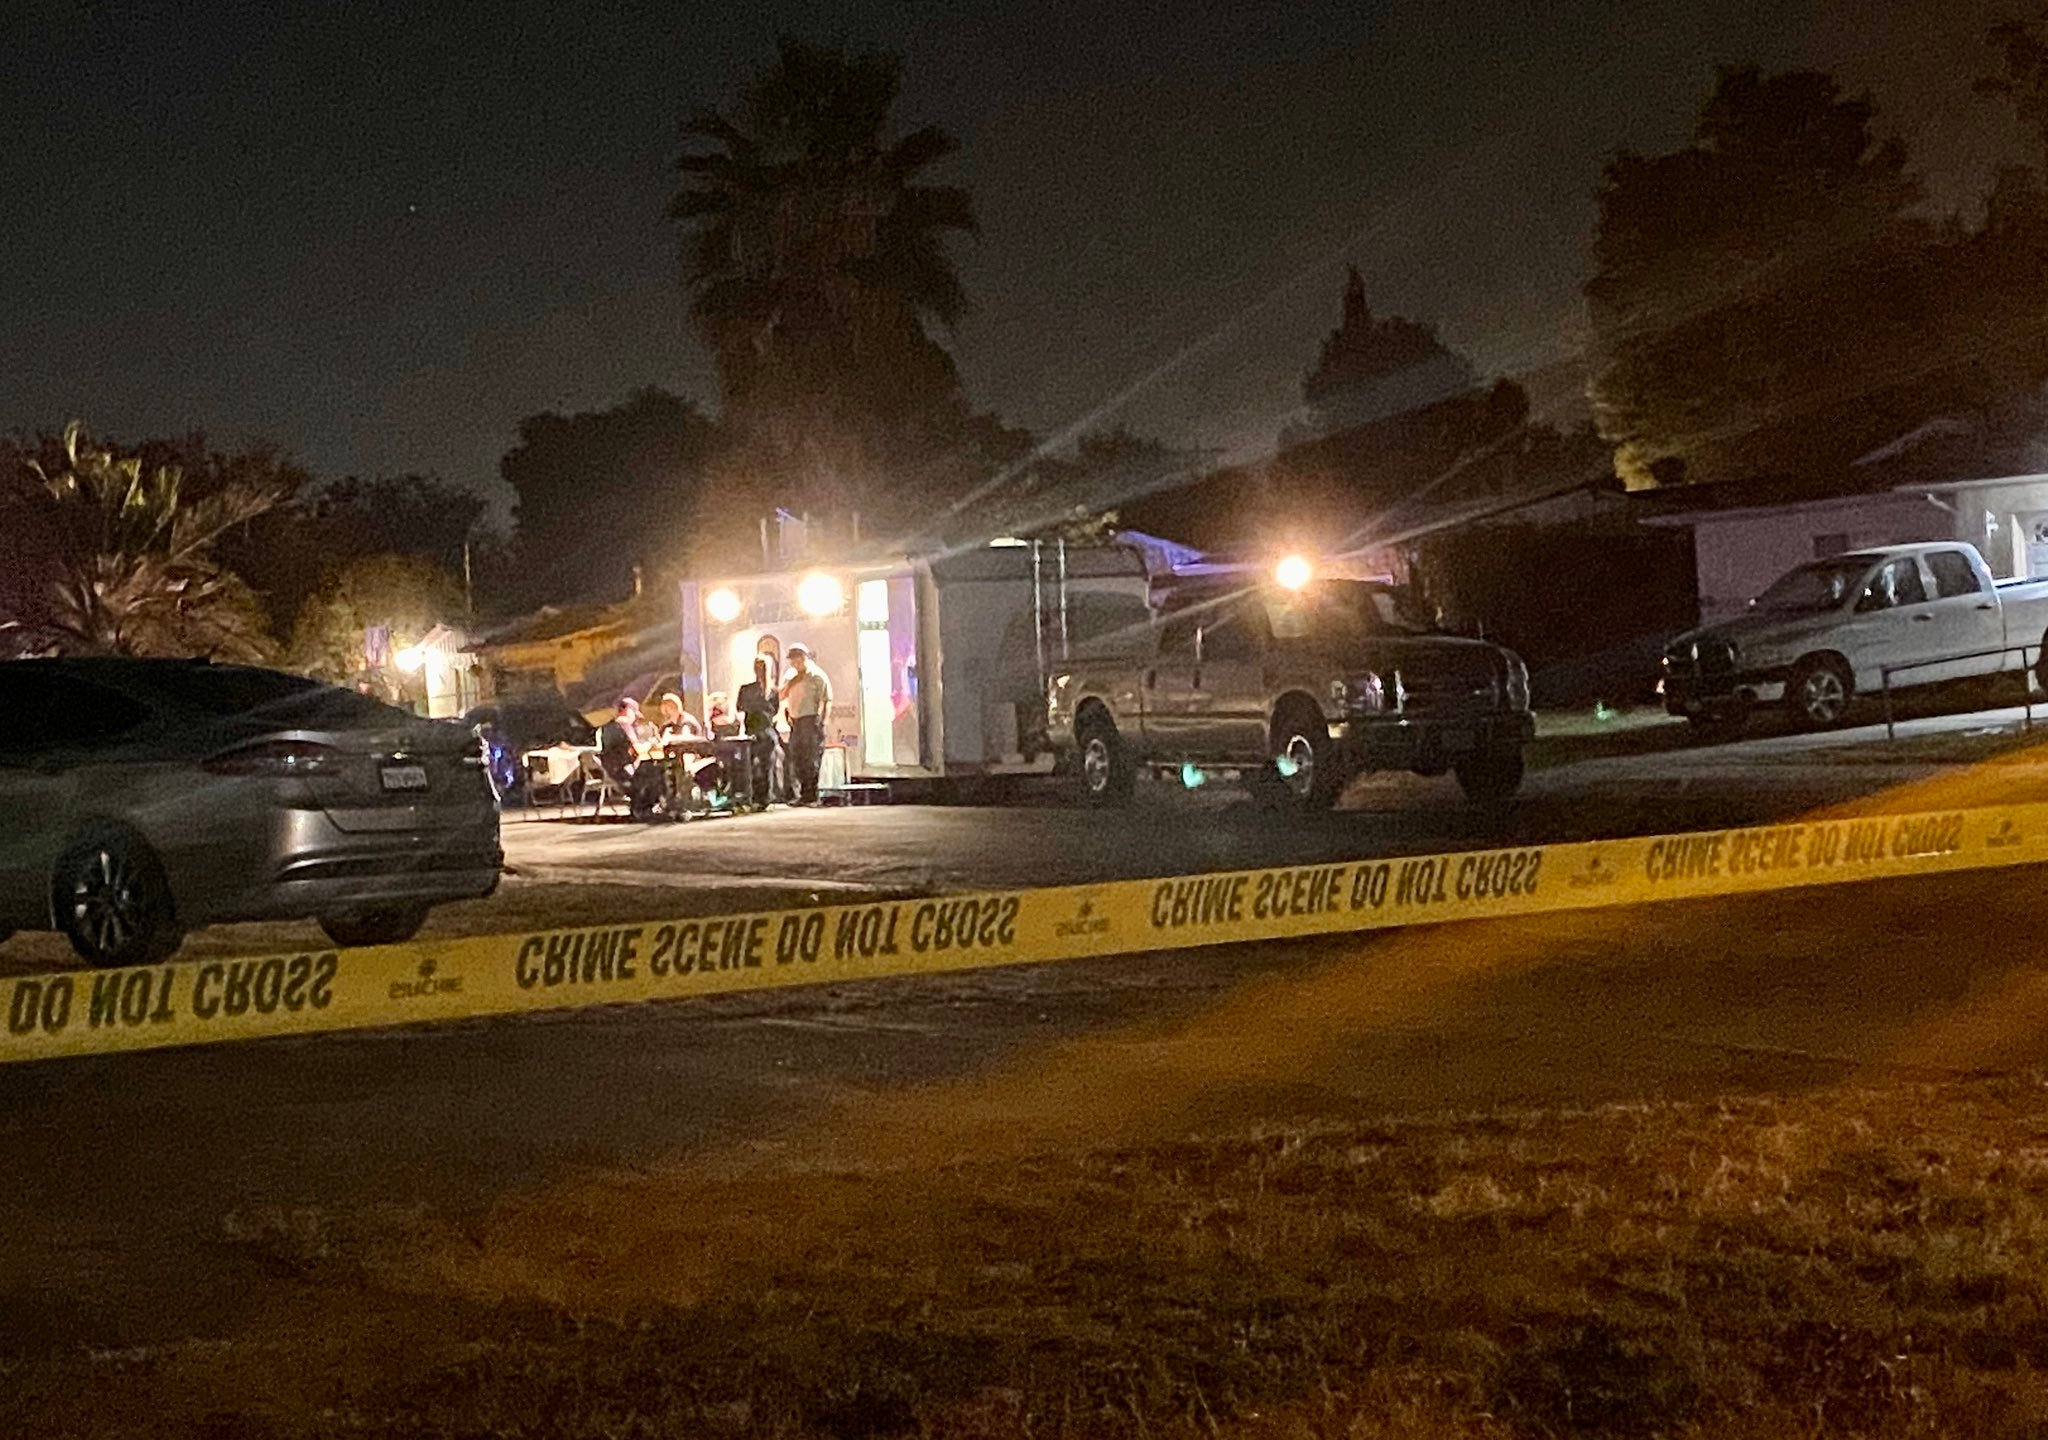 5-year-old shot by another child in her Merced home, police say